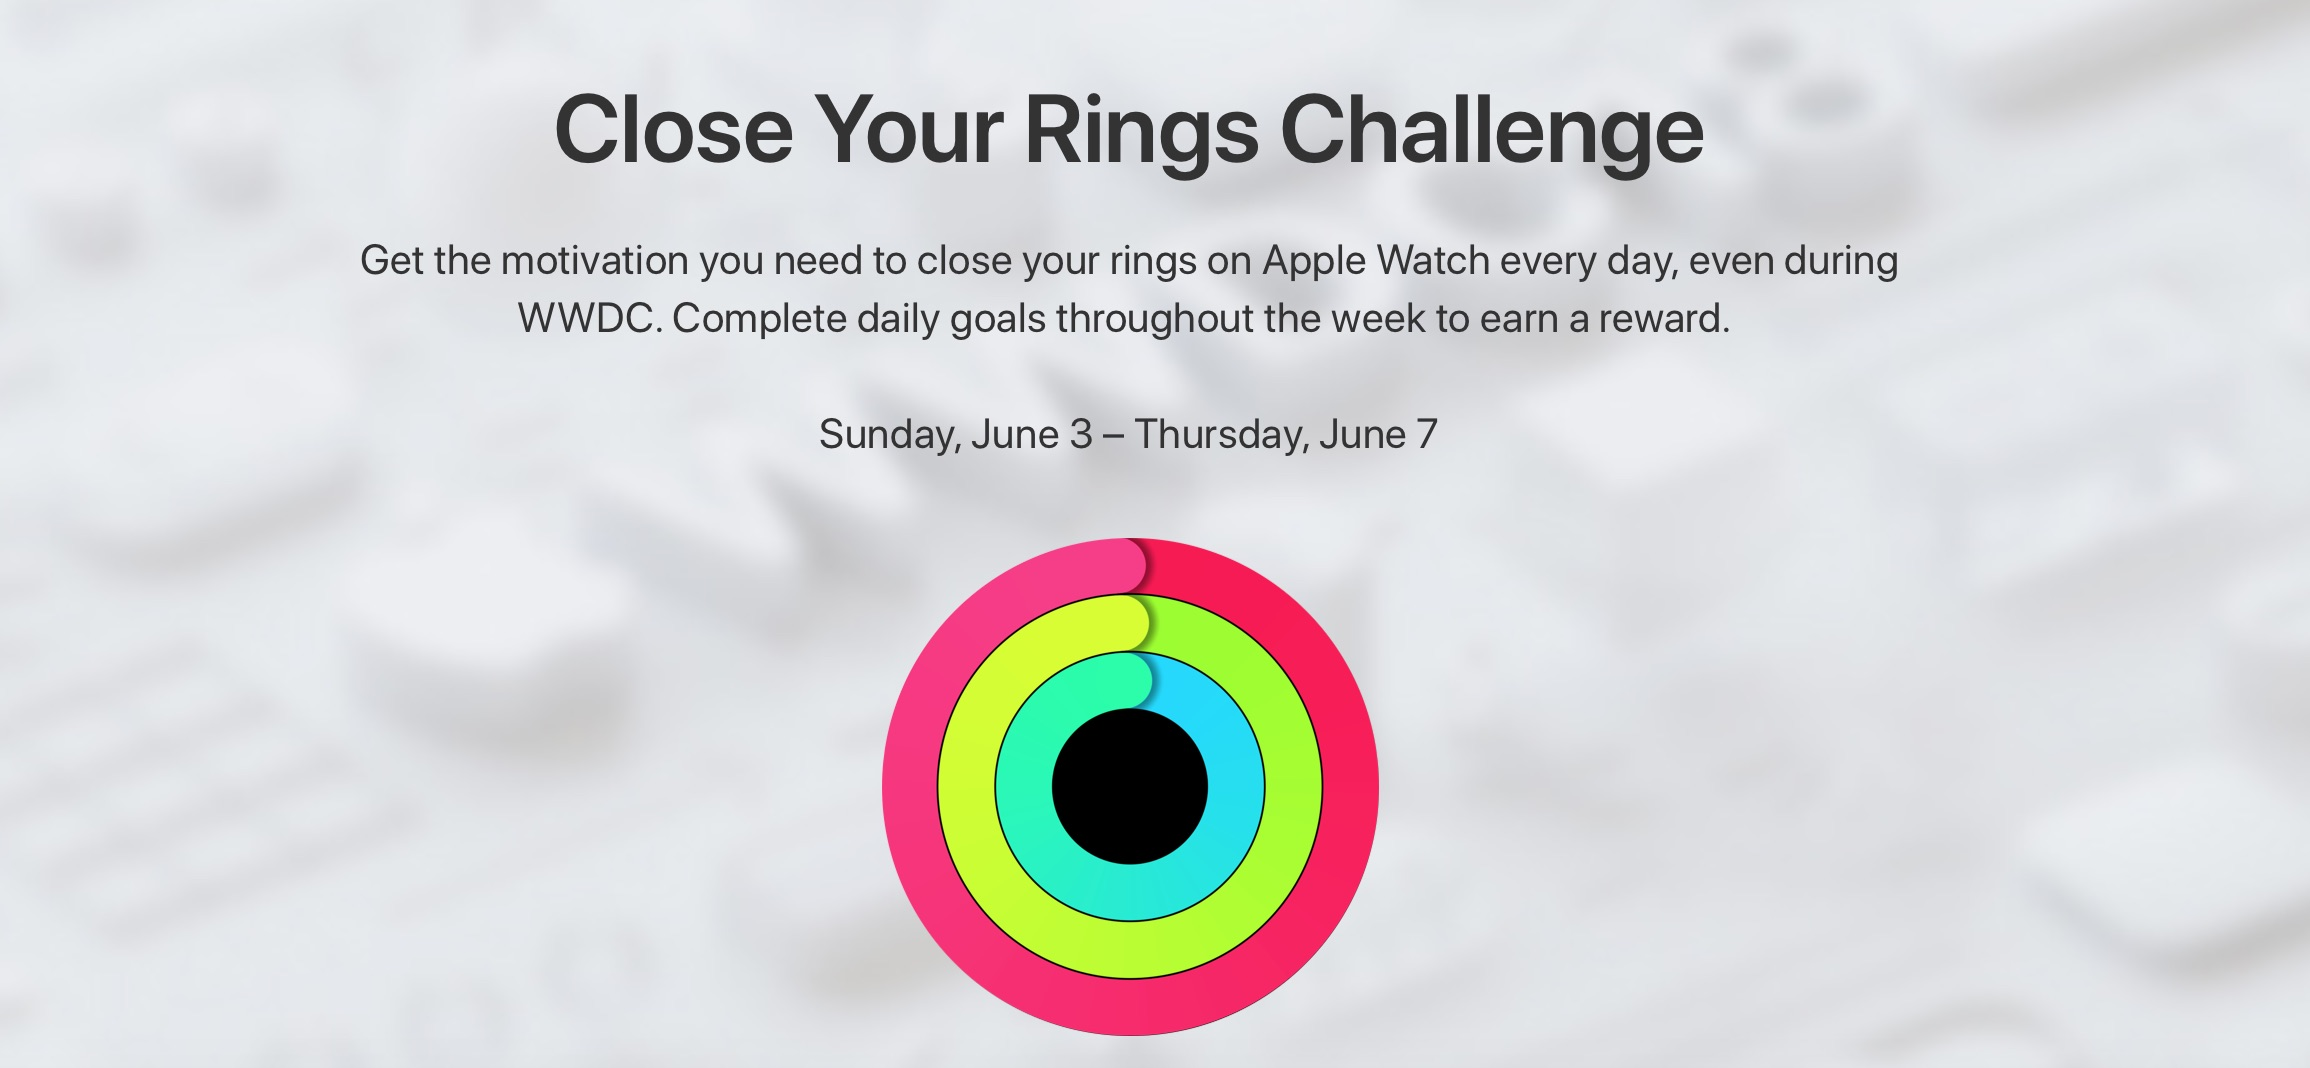 Close Your Rings